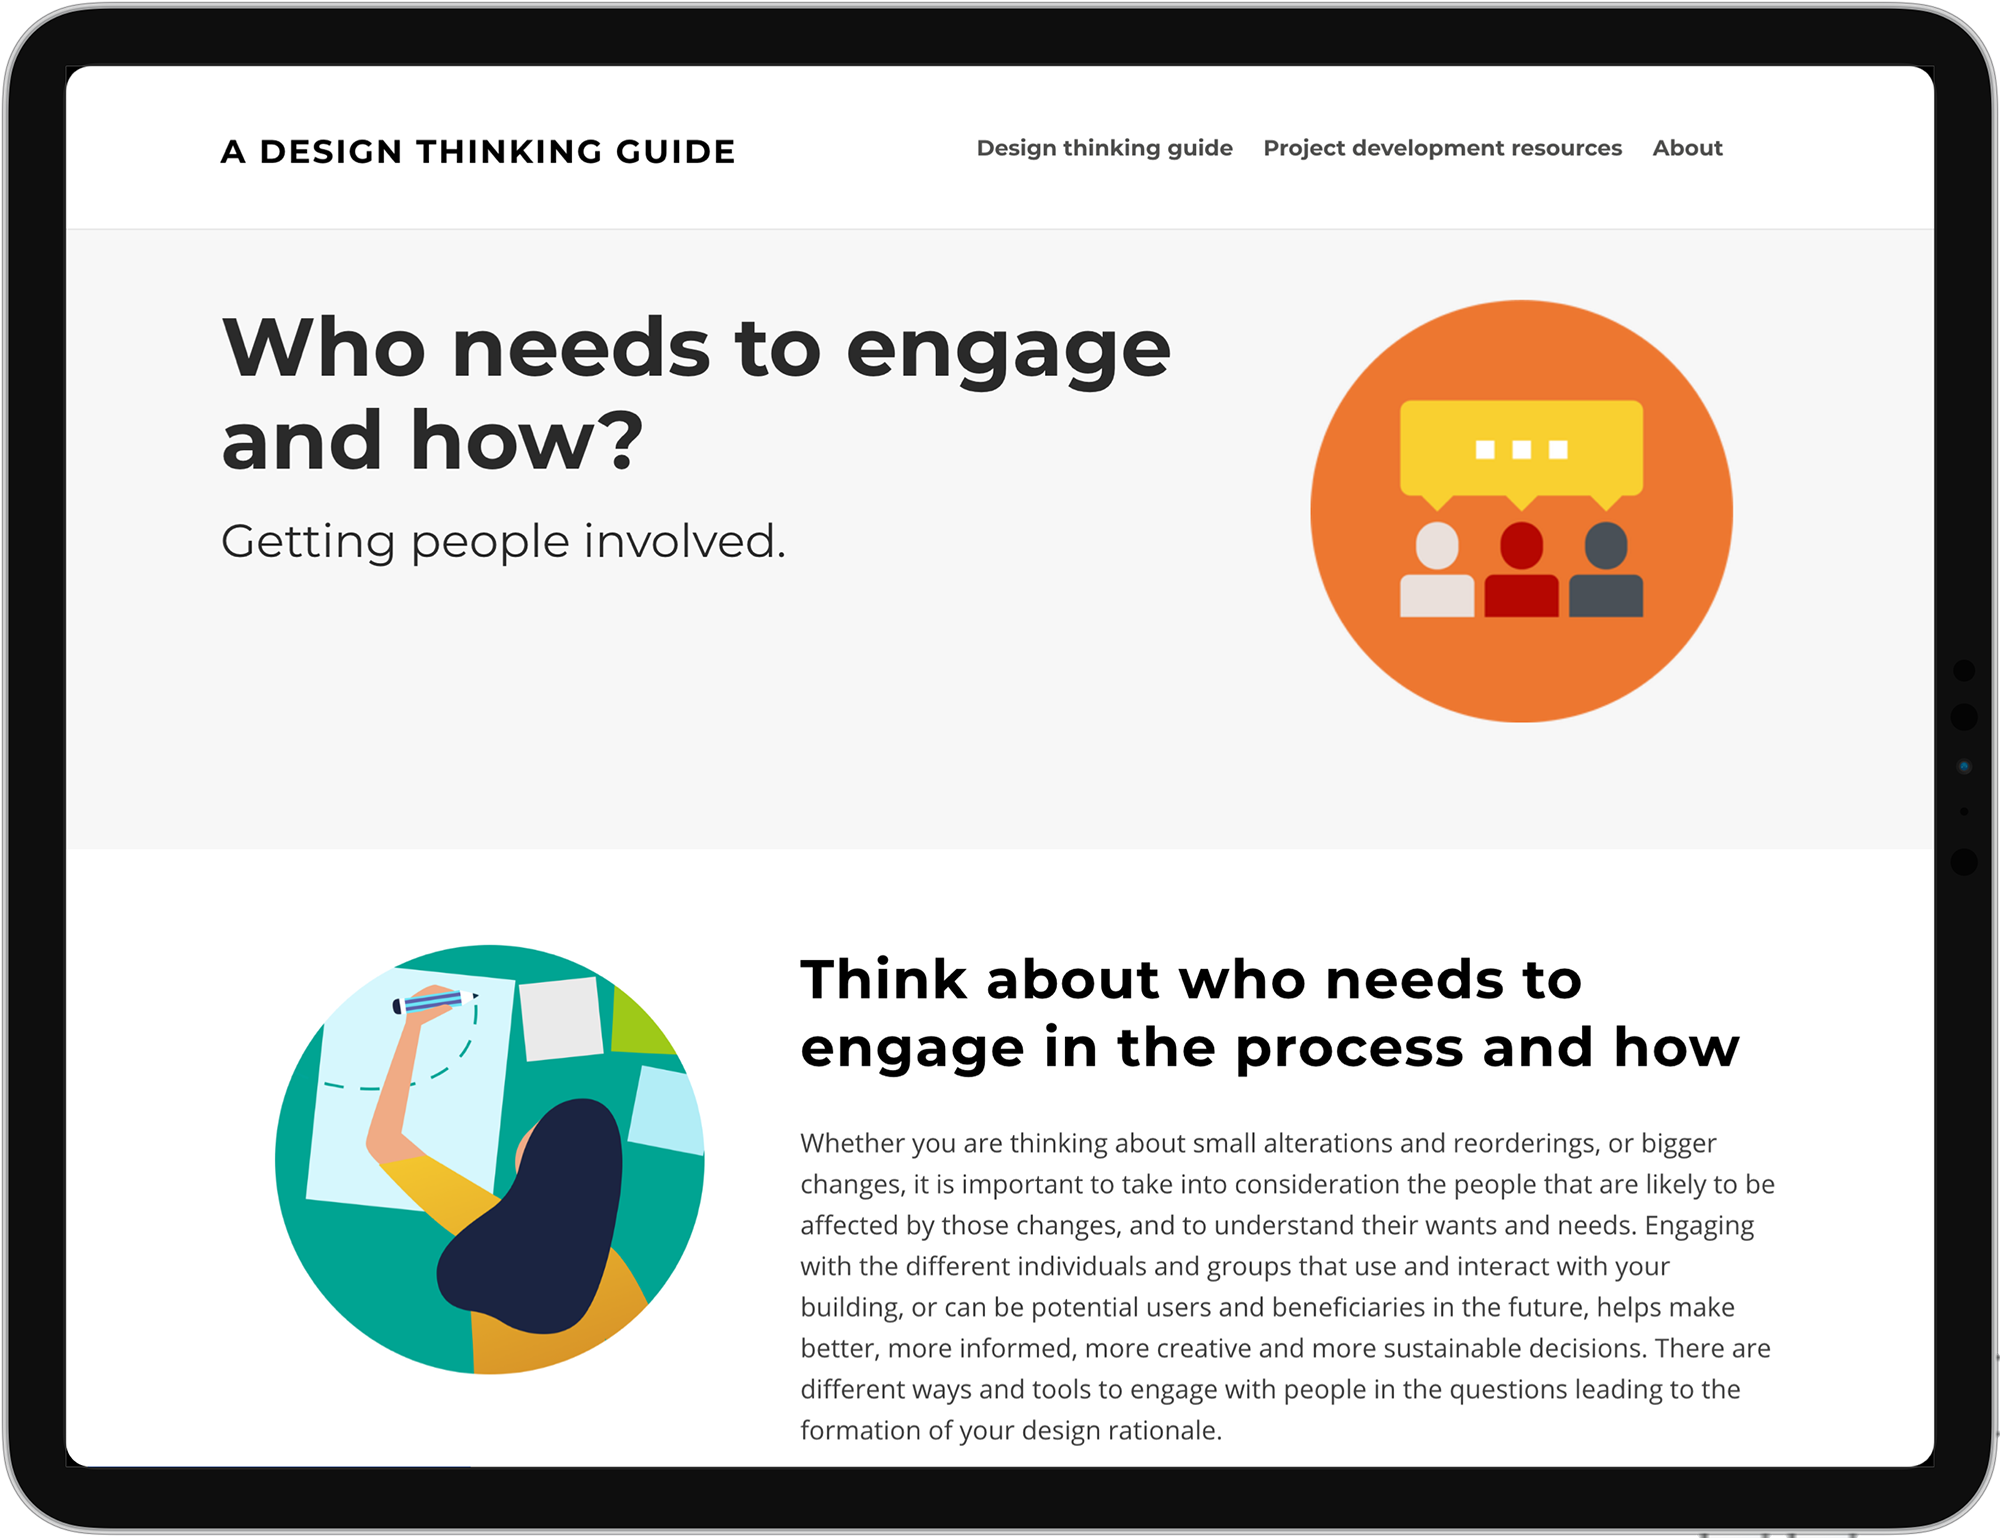 Design Thinking Guide website displayed on a tablet